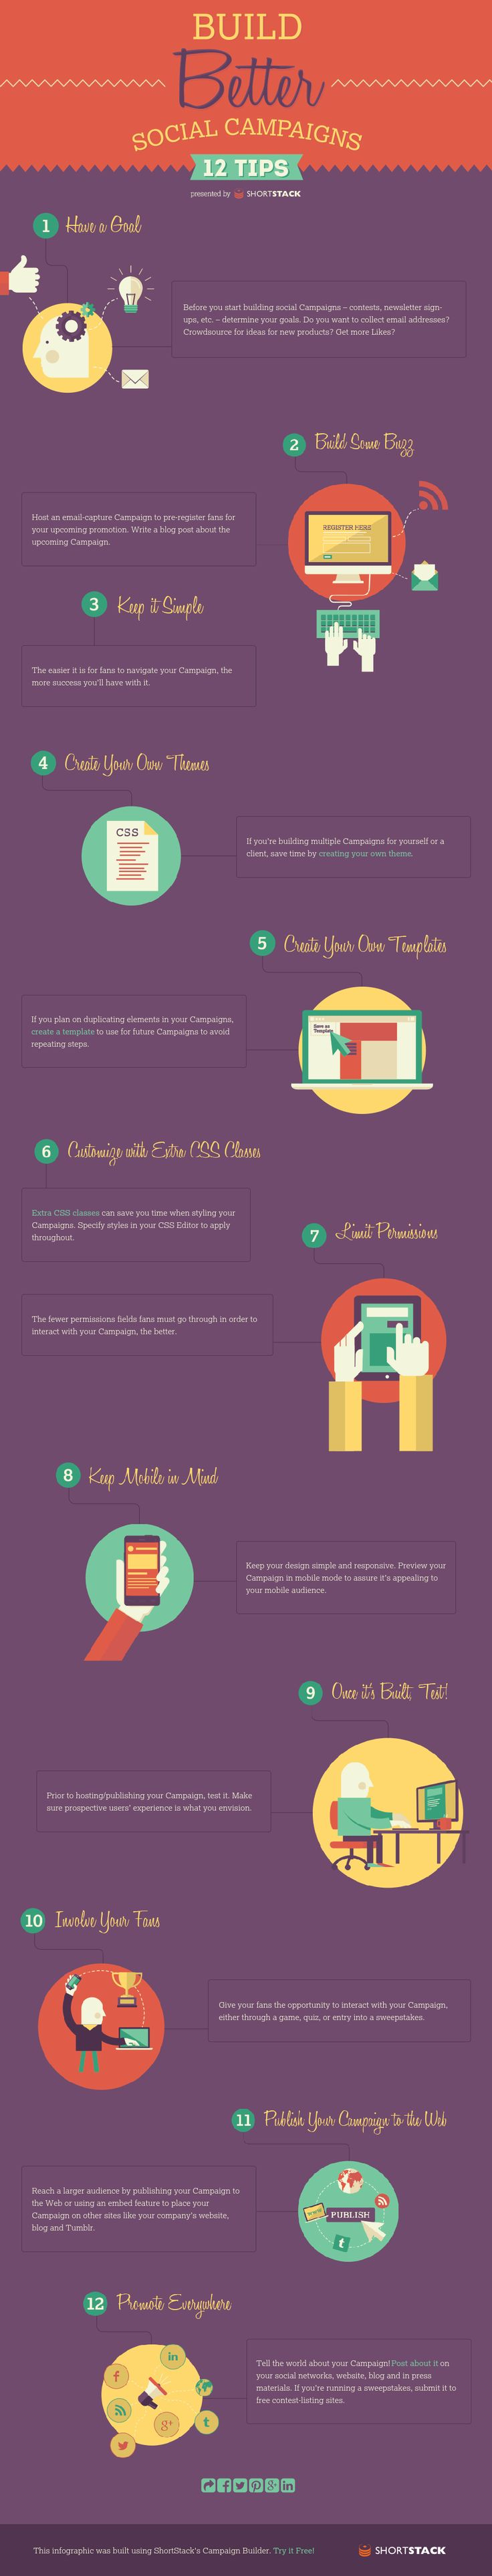 12 Best Practices For Building Better Social Media Marketing Campaigns  #infographic #SocialMedia #marketing